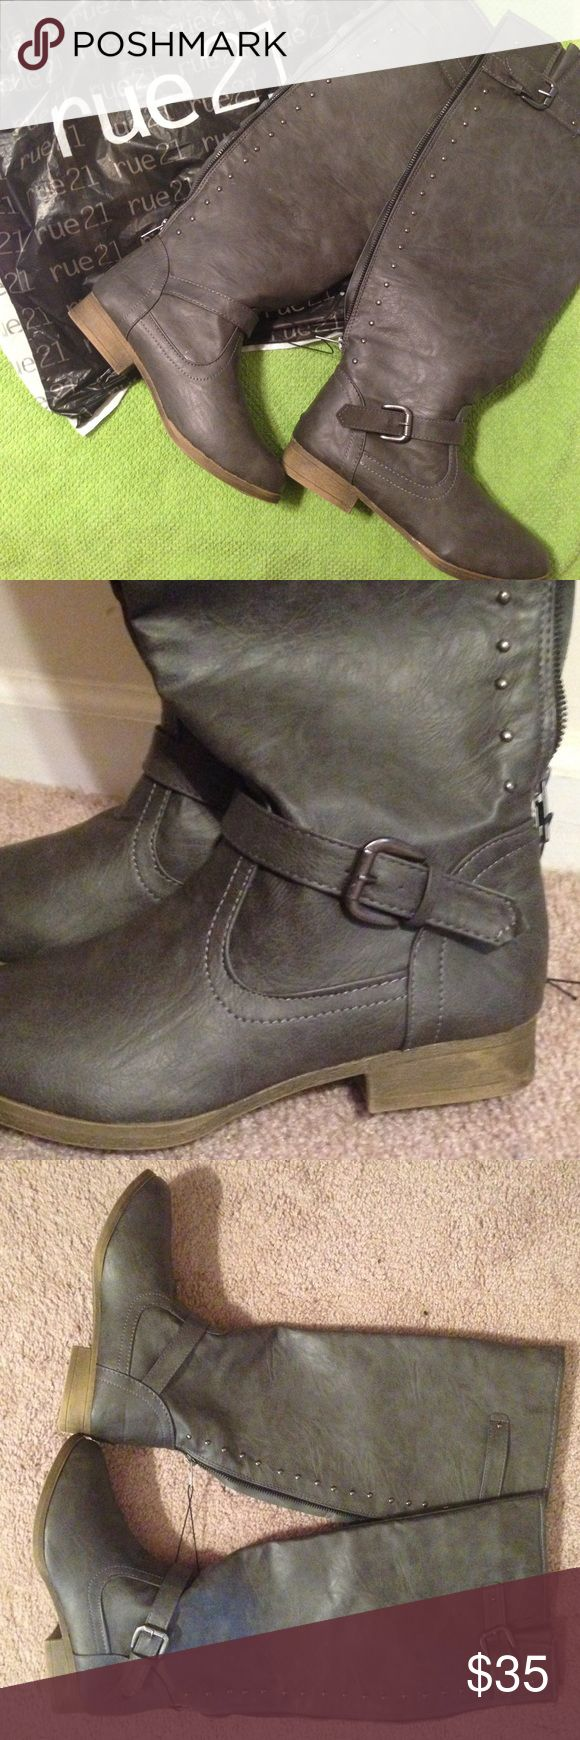 Sale! Grey Boots Grey boots that cover the calf. Zip up the back. Never worn. Rue 21 Shoes